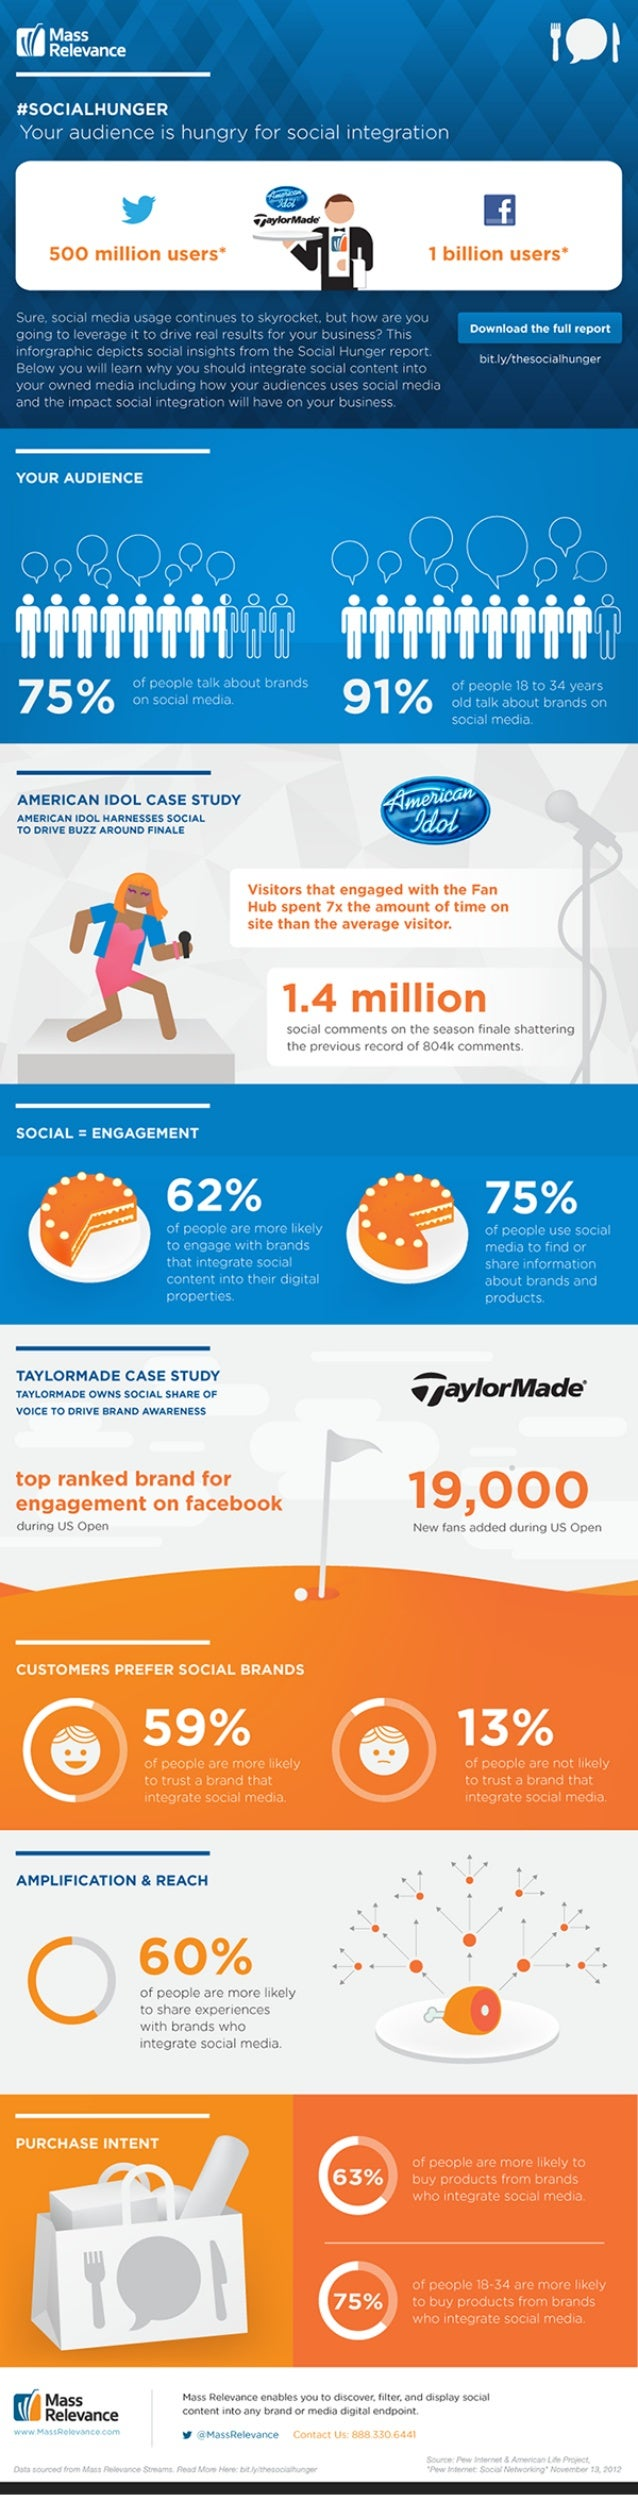 Collaborative IQ with Denise Holt - INFOGRAPHIC Social Hunger